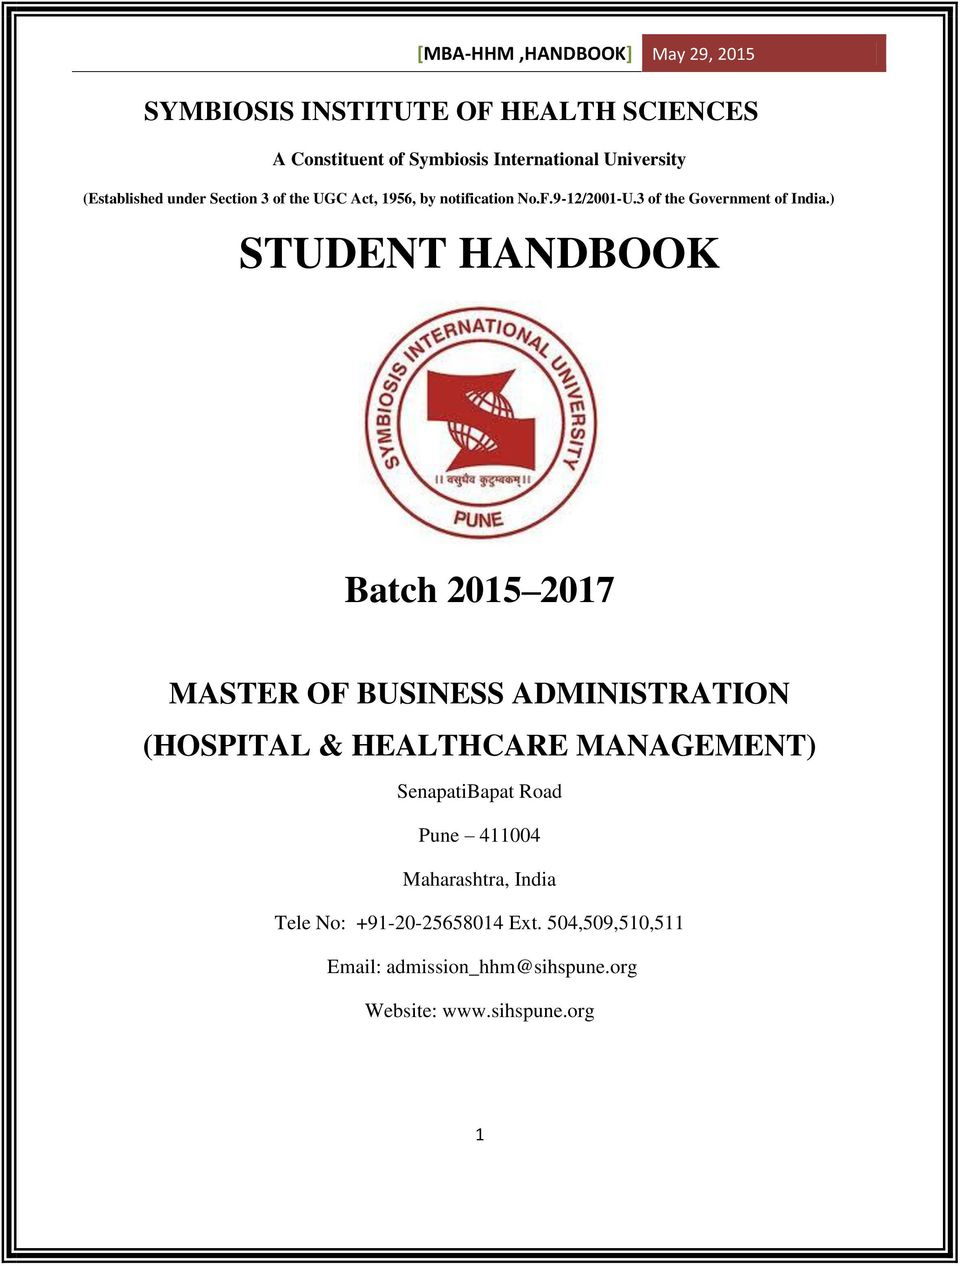 ) STUDENT HANDBOOK Batch 2015 2017 MASTER OF BUSINESS ADMINISTRATION (HOSPITAL & HEALTHCARE MANAGEMENT)